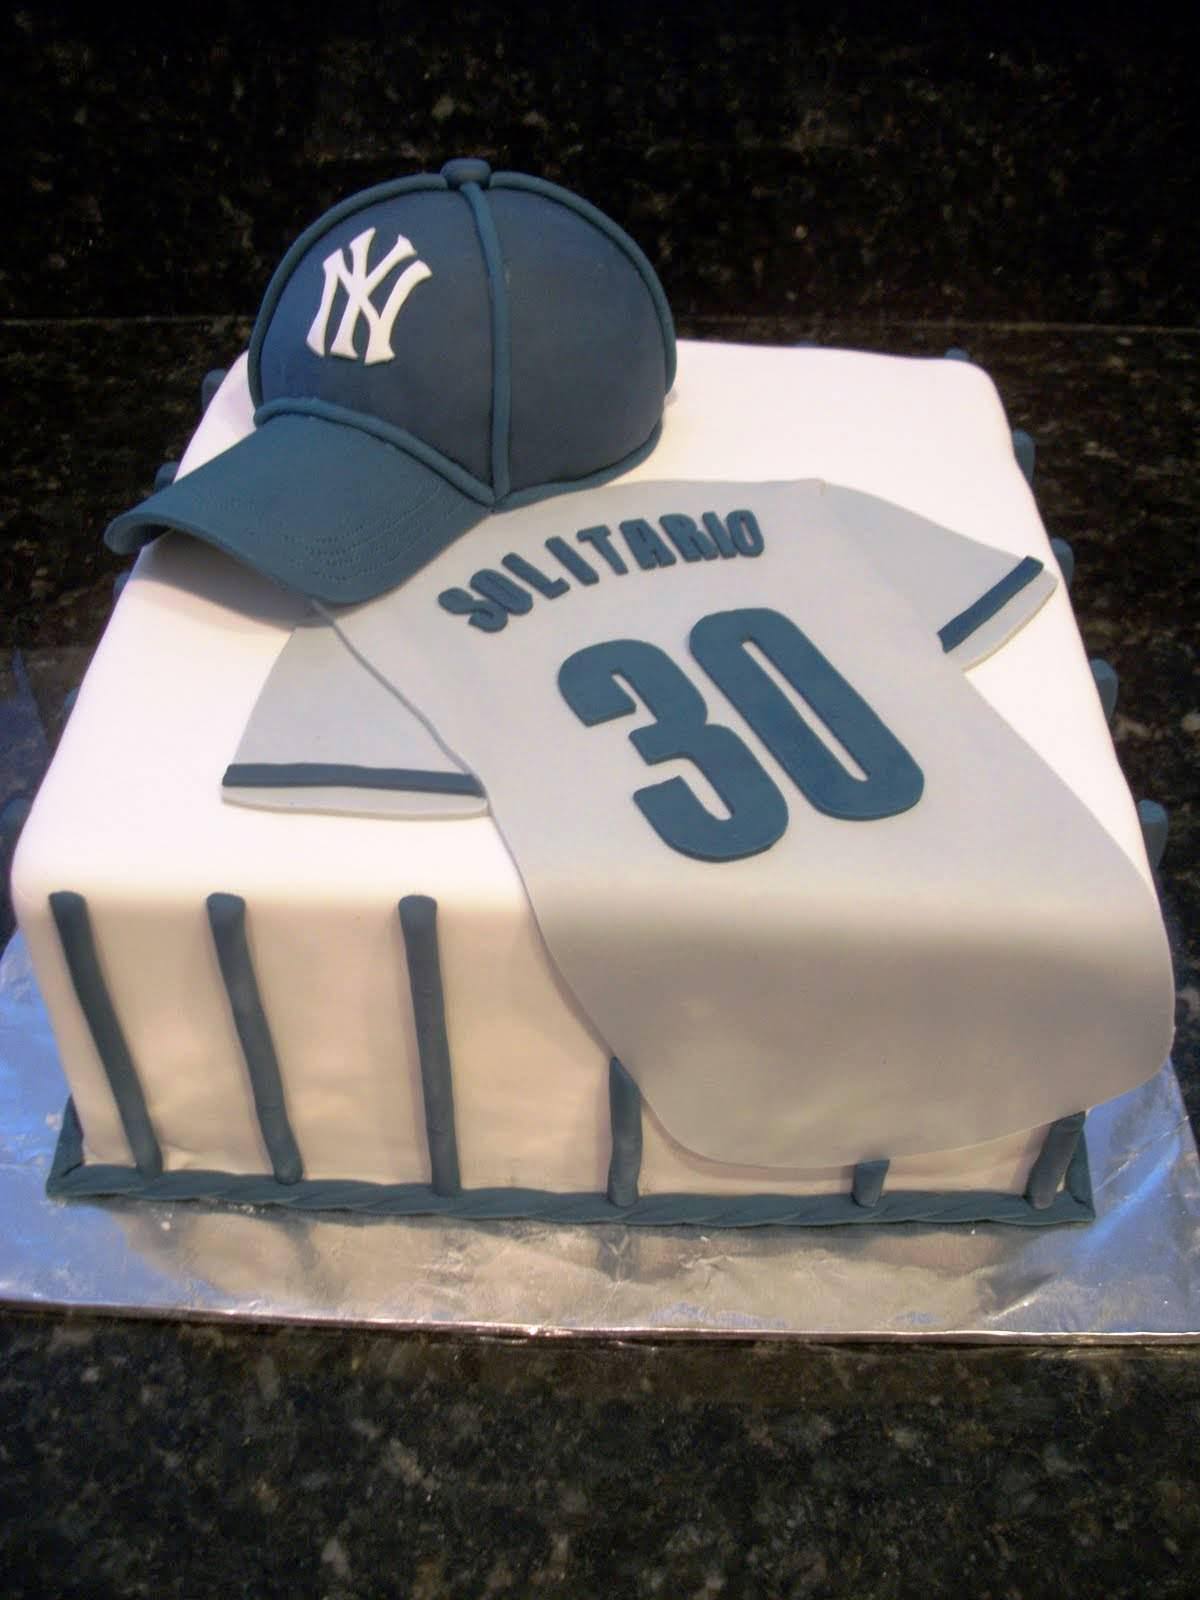 Birthday Cakes For Men 30th Birthday Cake Ideas For Men Protoblogr